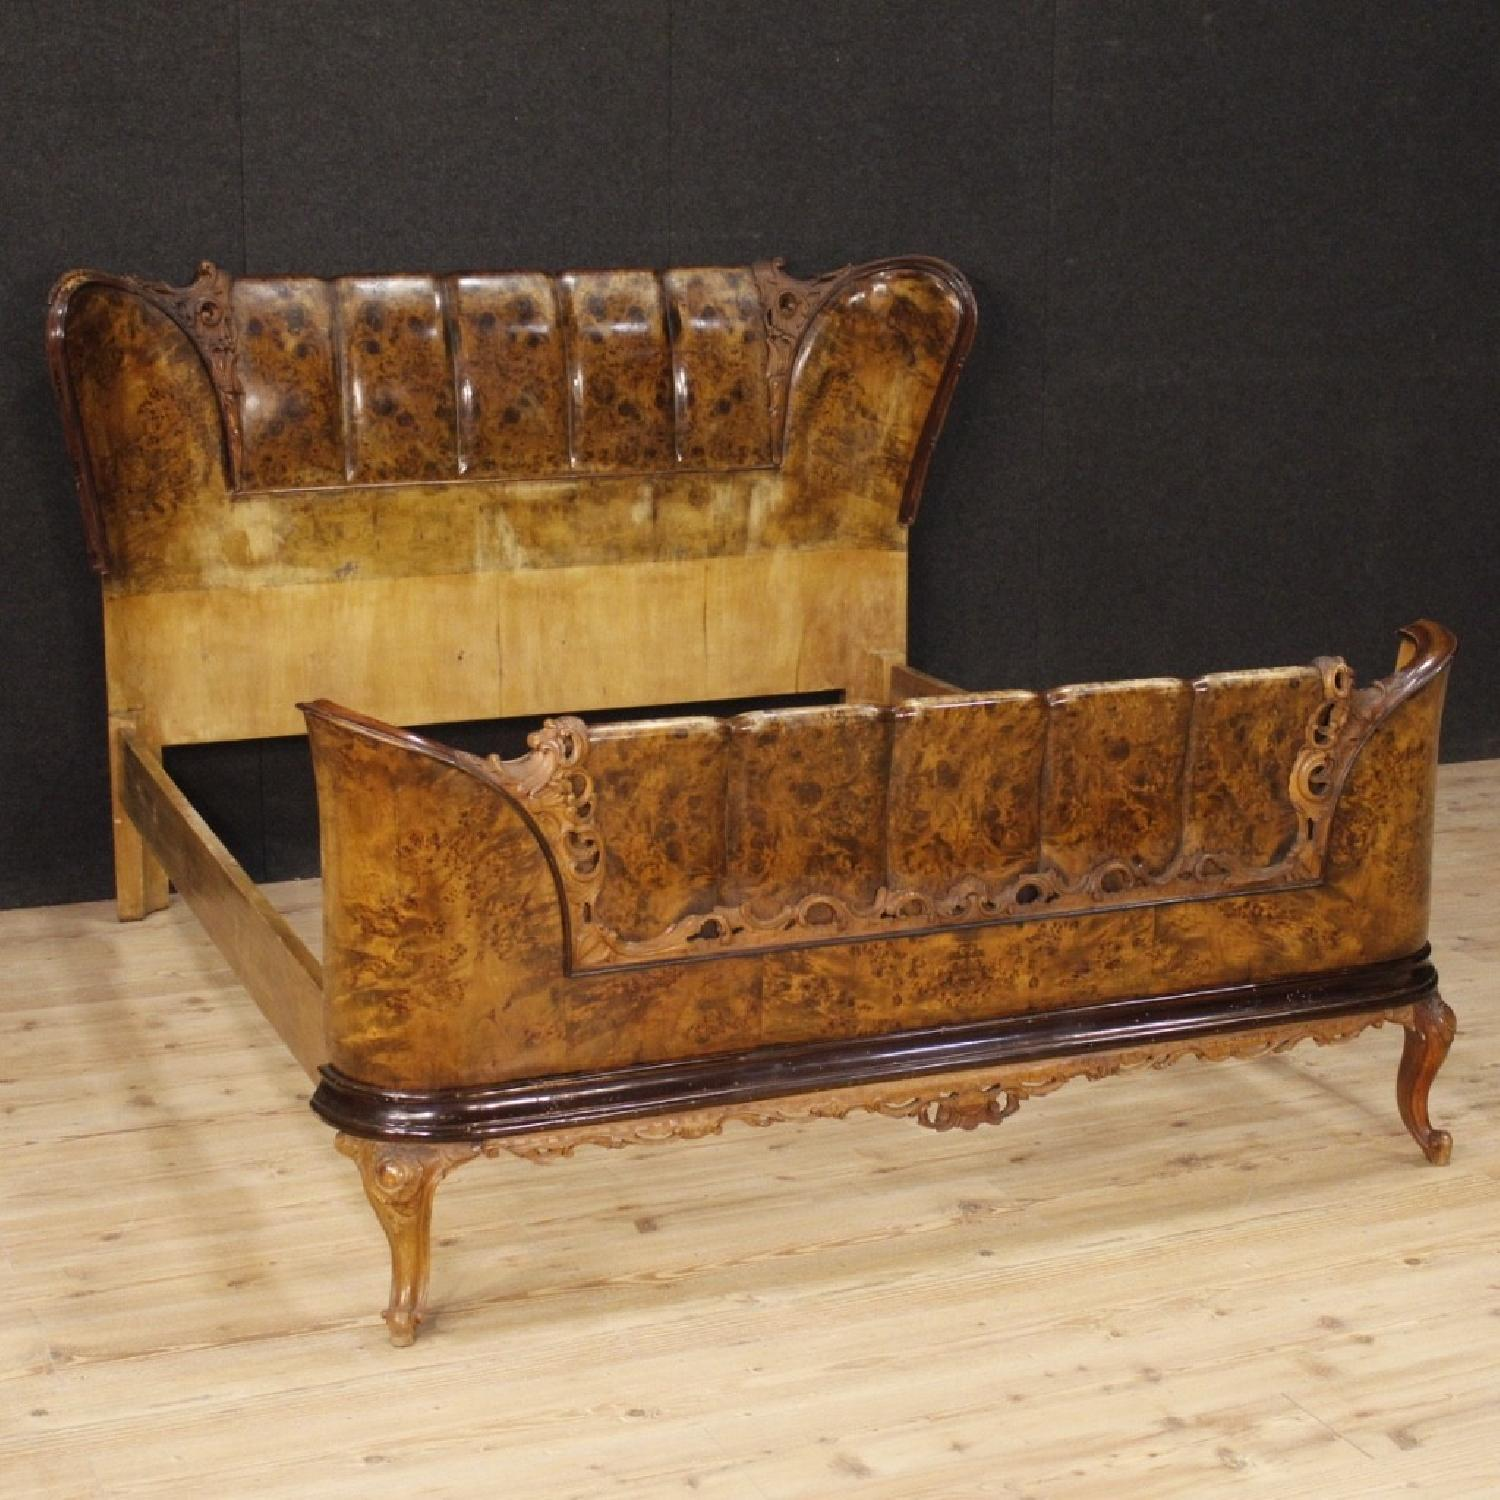 20th Century Cherry, Beech, Burl Walnut Italian Double Bed-4